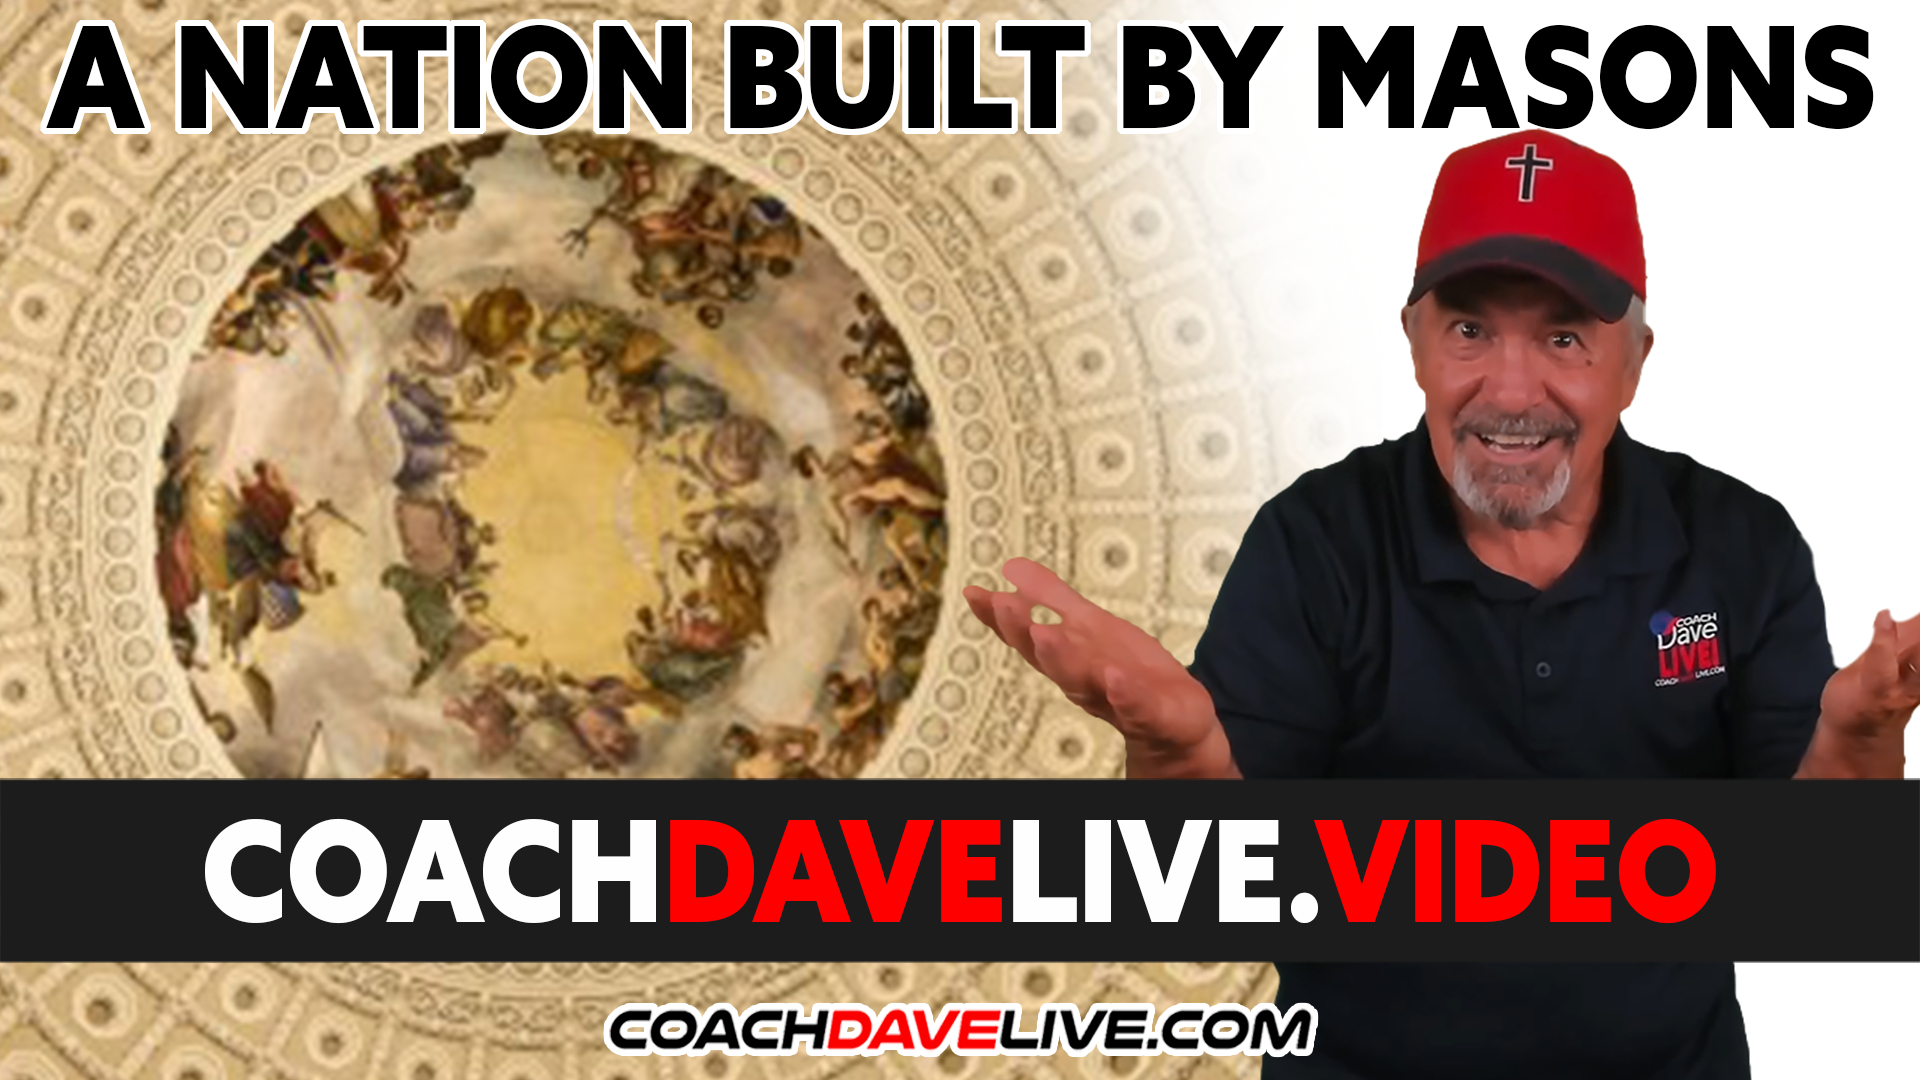 Coach Dave LIVE | 9-24-2021 | A NATION BUILT BY MASONS